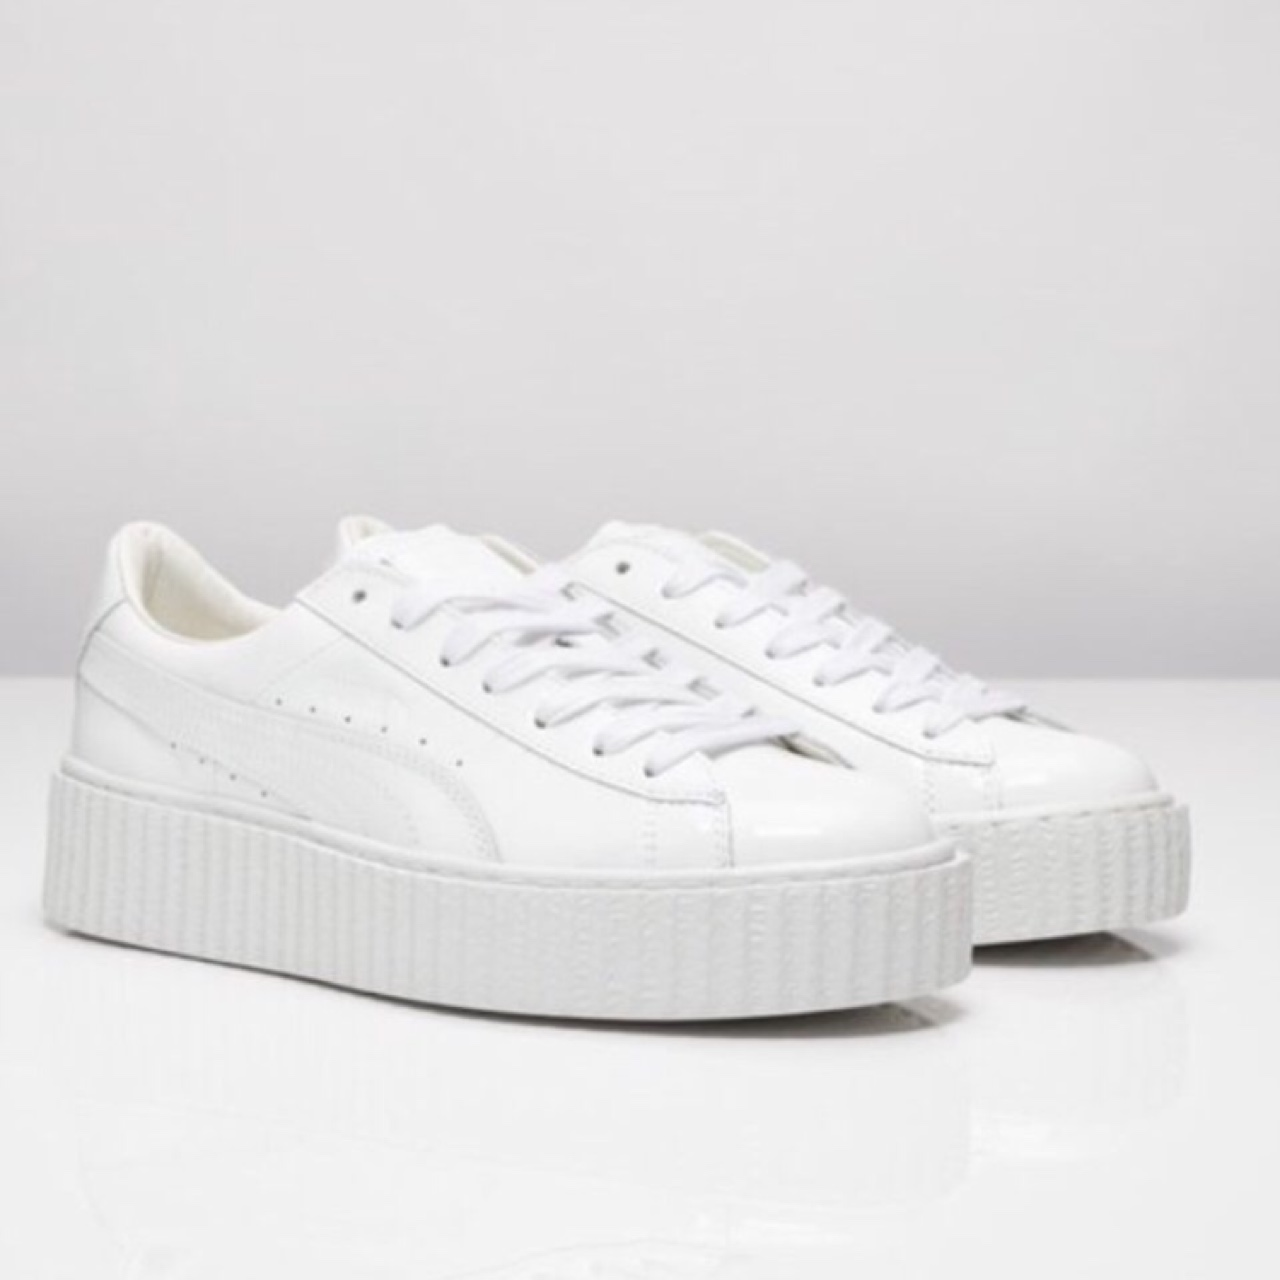 best loved e9c8c ff073 PUMA RIHANNA FENTY CREEPERS WHITE - SIZE 4.5 and ...